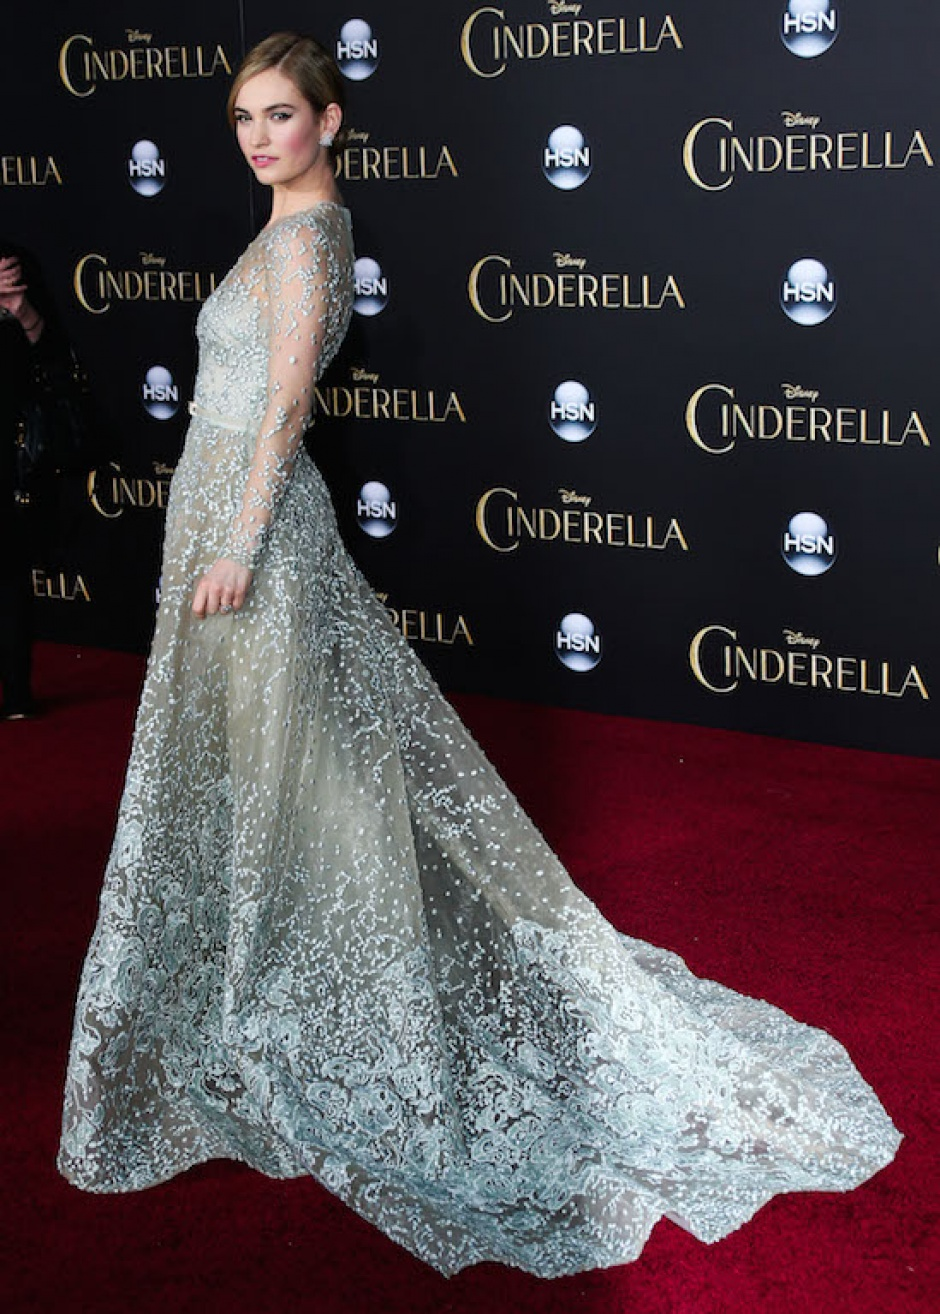 Lily James wearing an Elie Saab Couture gown at the Cinderella premiere